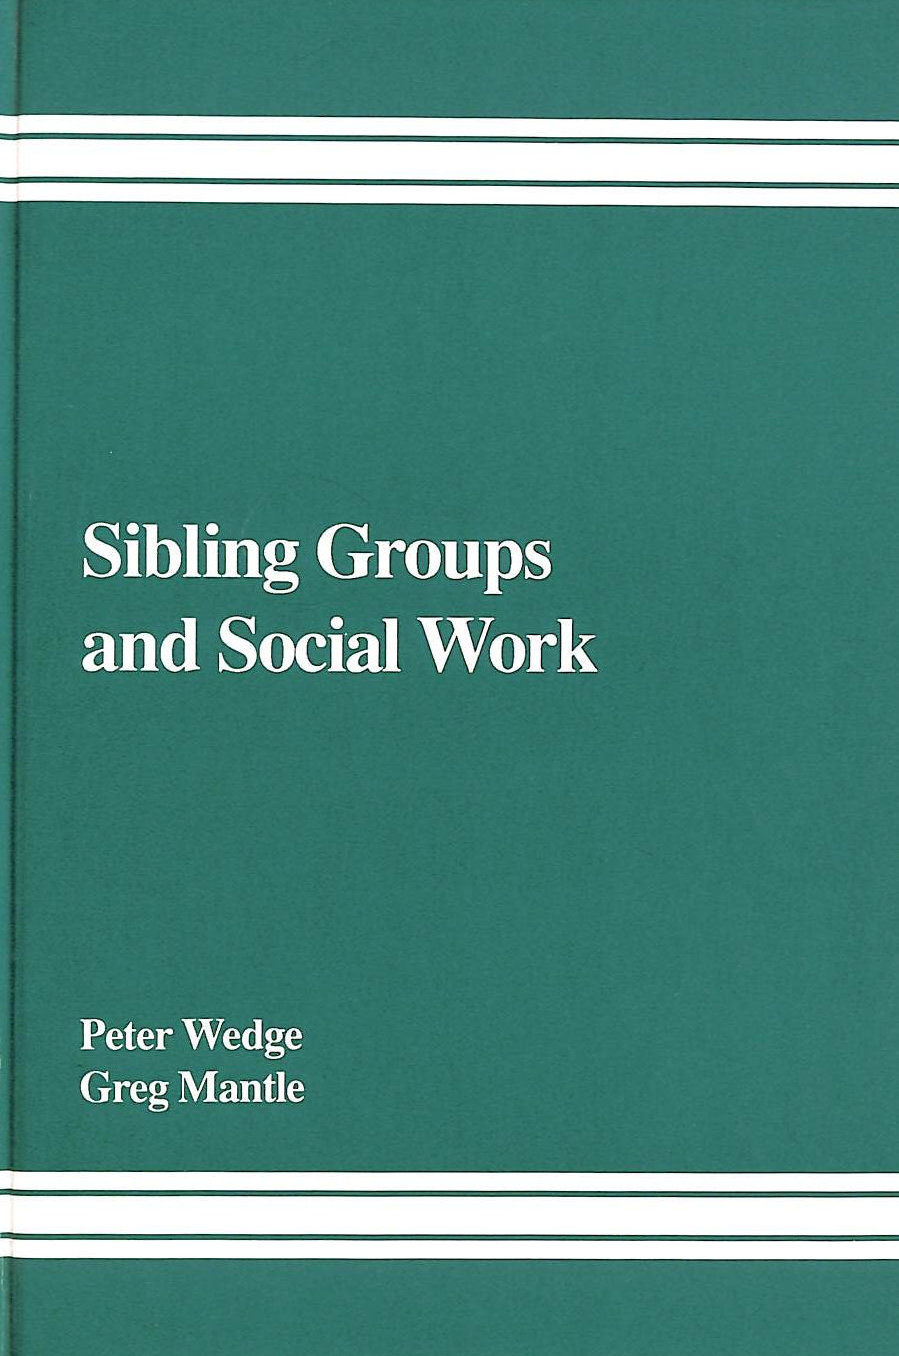 Image for Sibling Groups and Social Work: A Study of Children Referred for Permanent Substitute Family Placement